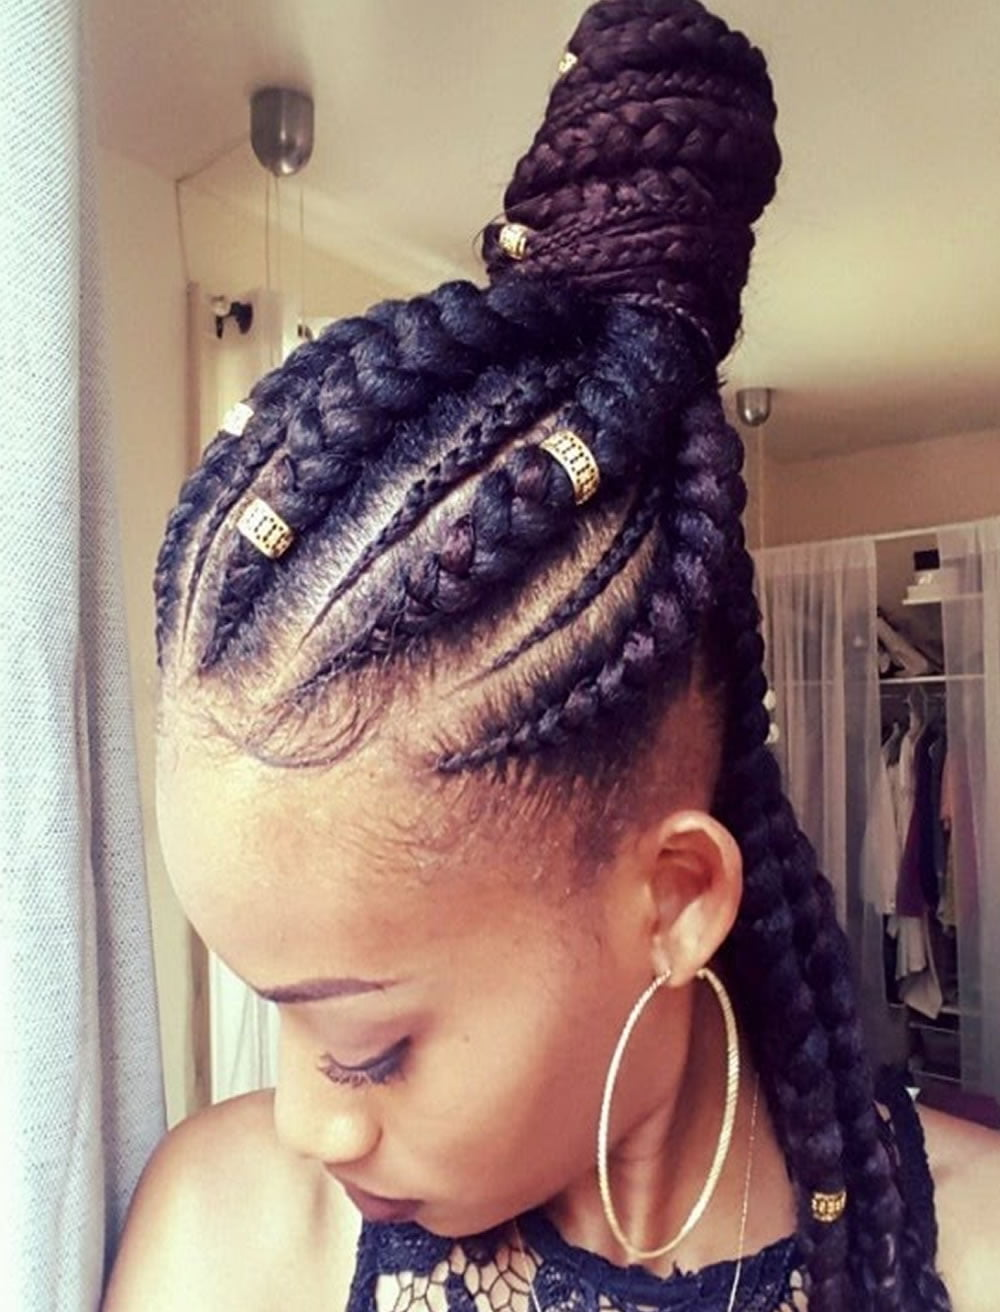 2019 Ghana Braids Hairstyles For Black Women Page 5 Hairstyles